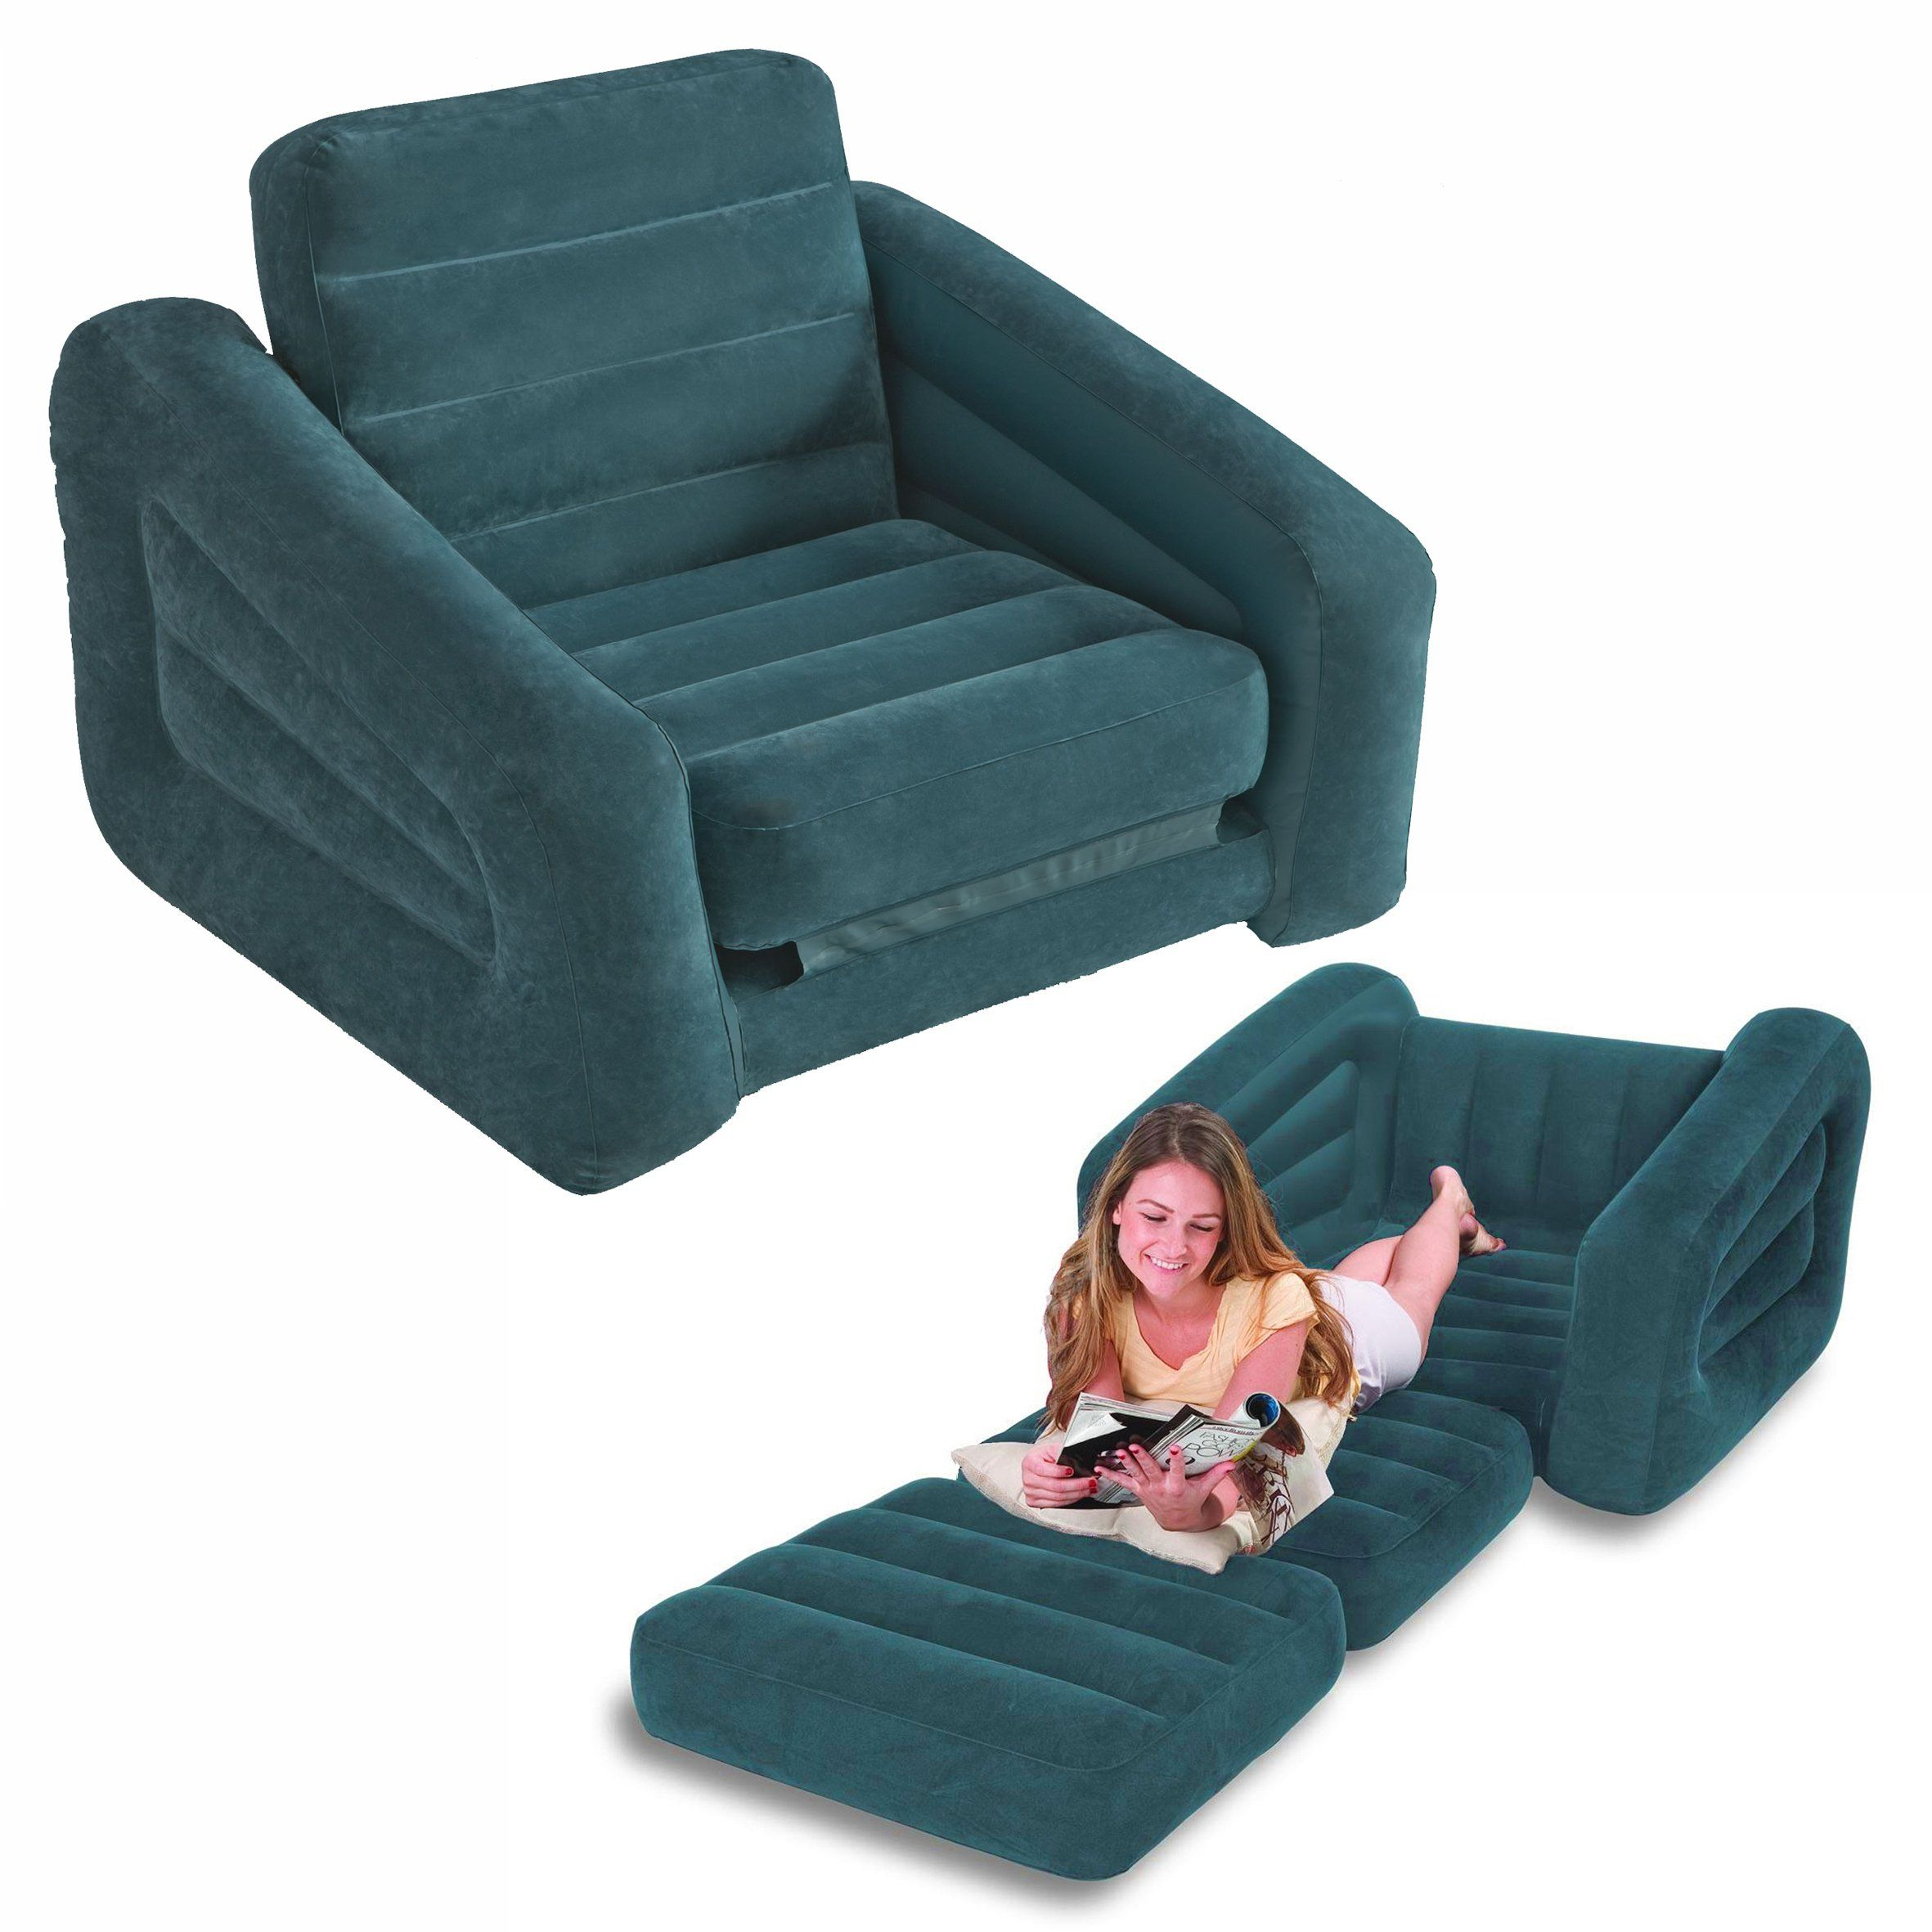 Intex e Person Inflatable Pull Out Chair Bed Sofa bed